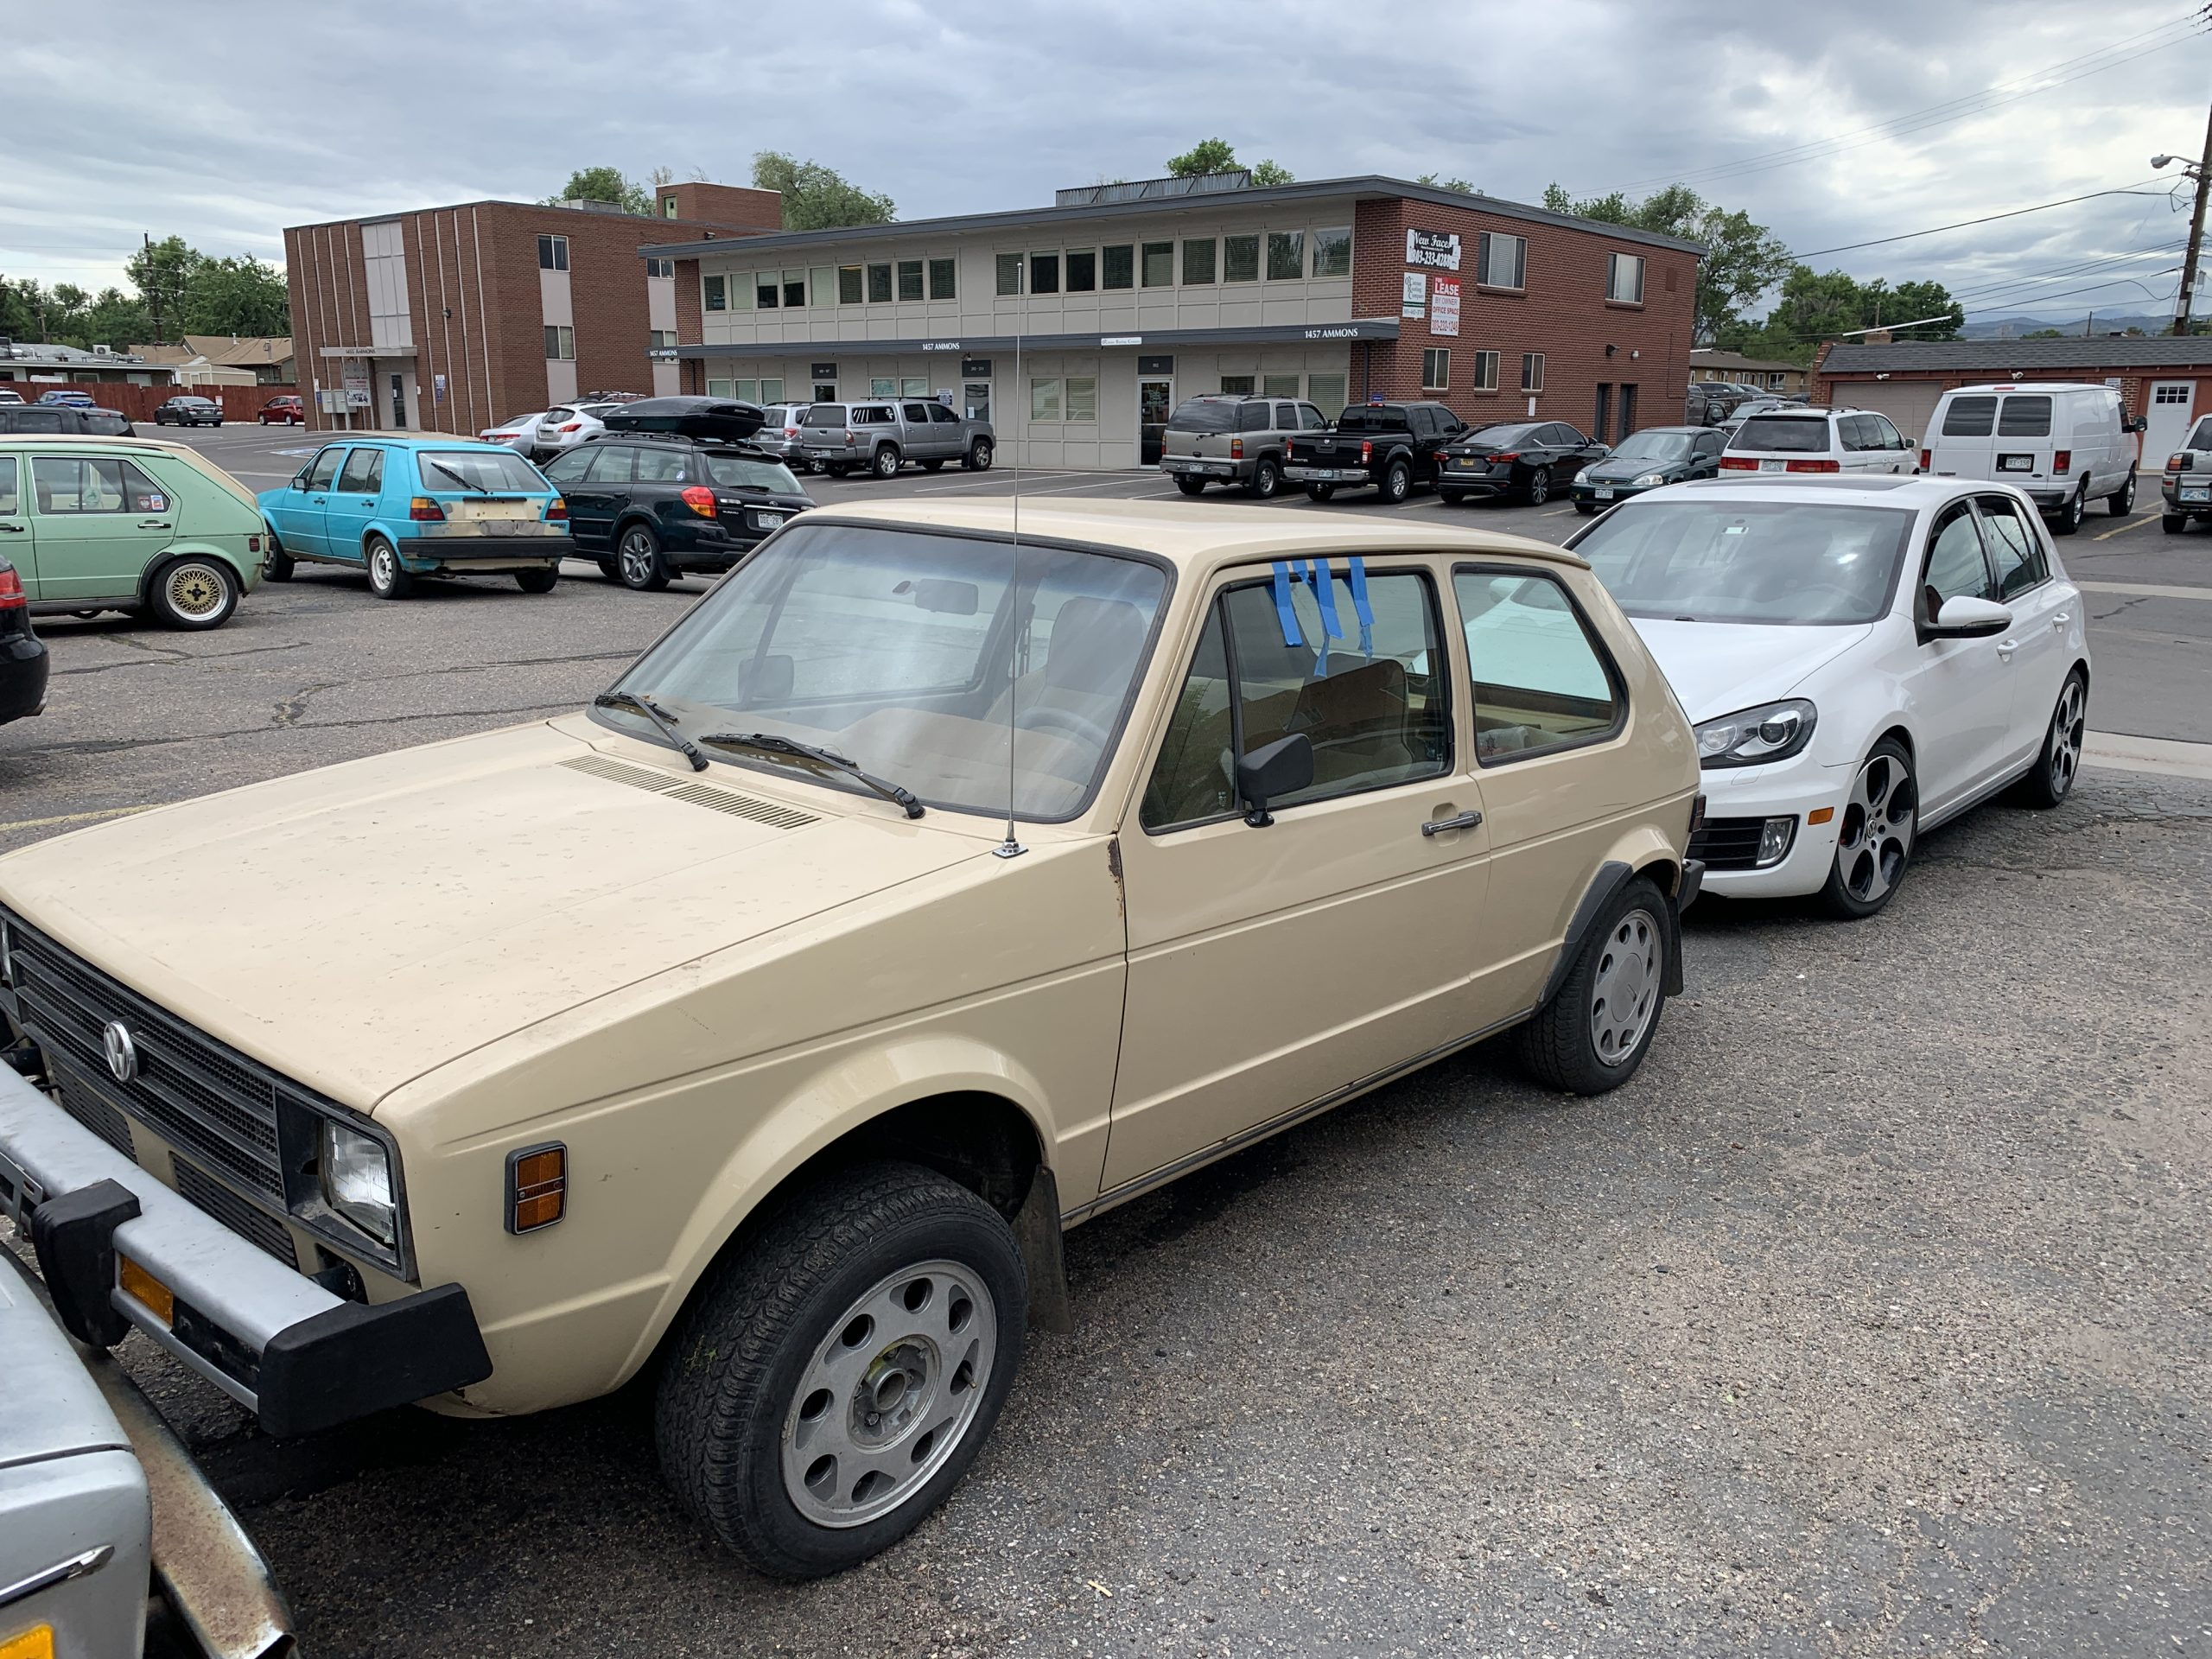 1980 VW Rabbit TDI swap before Jun 18, 2 48 25 PM